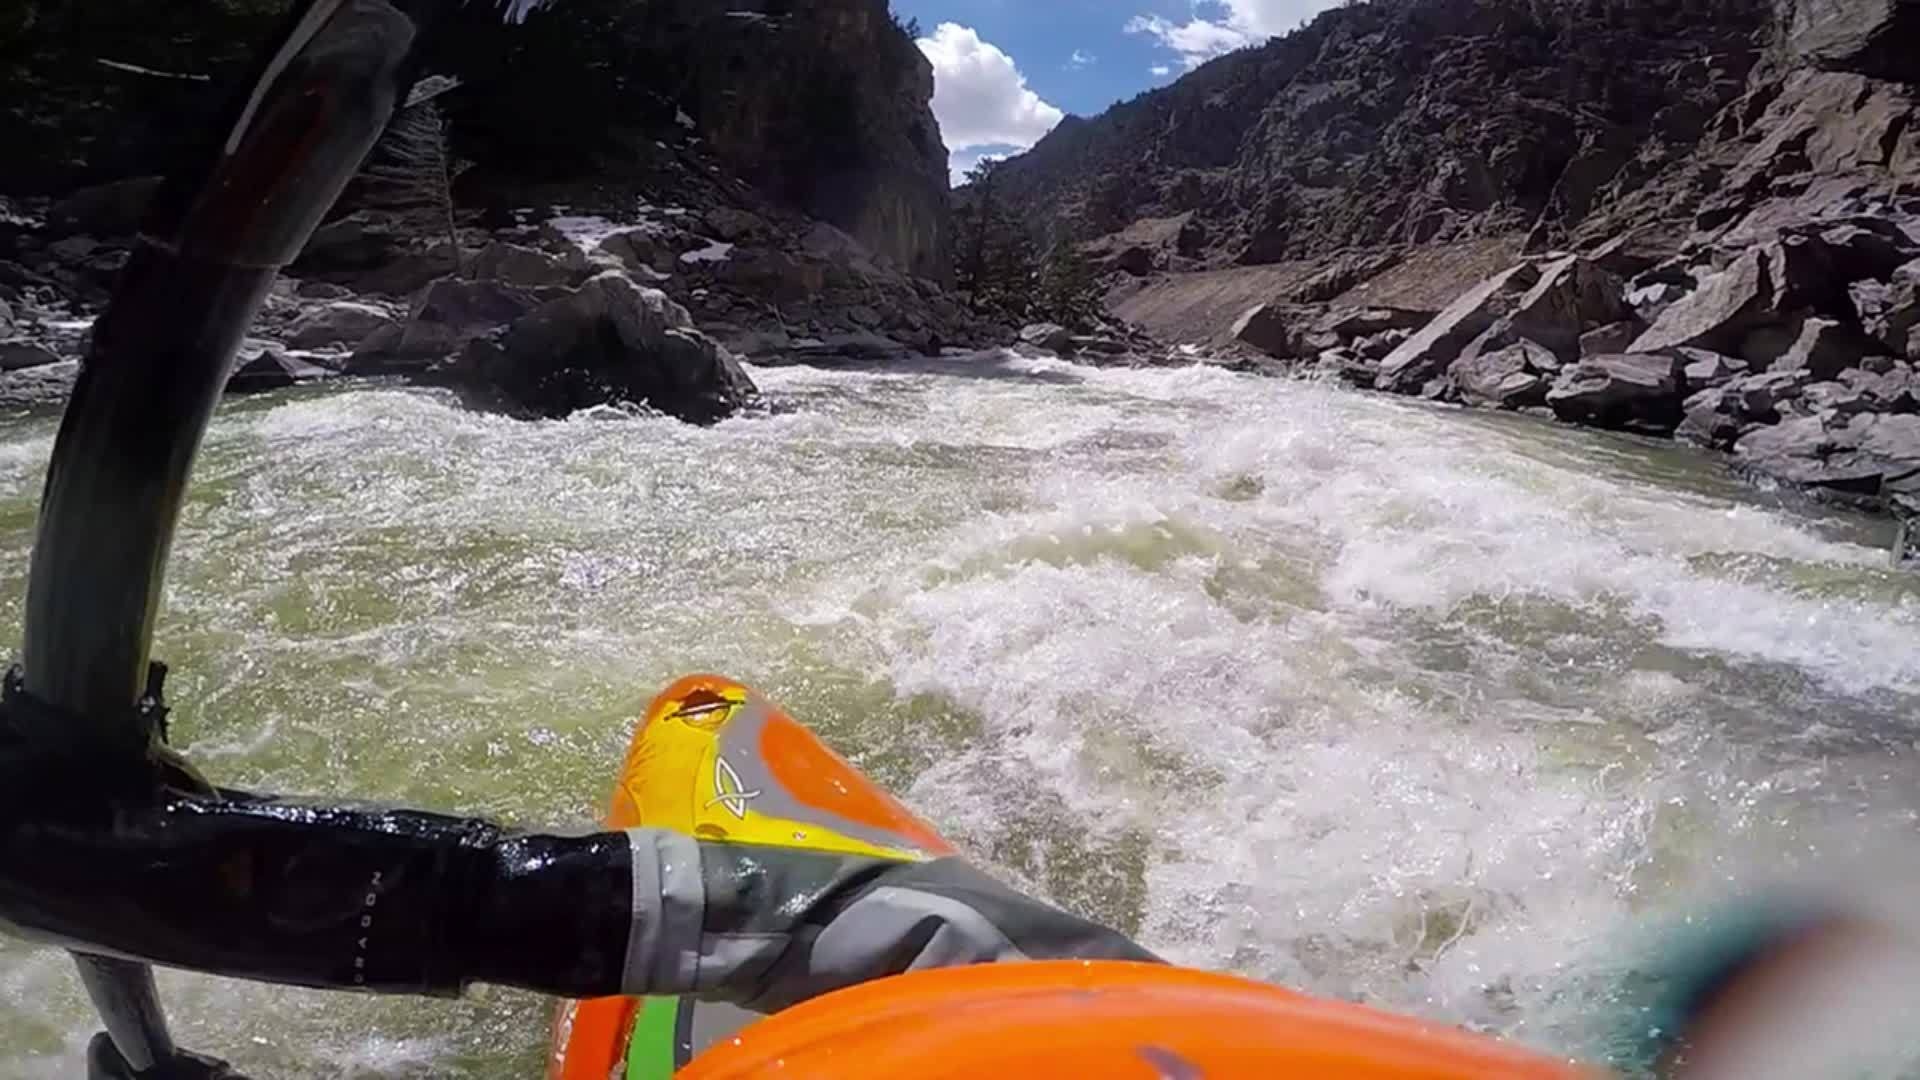 kayak, whitewater, Tunnel Gore Canyon GIFs